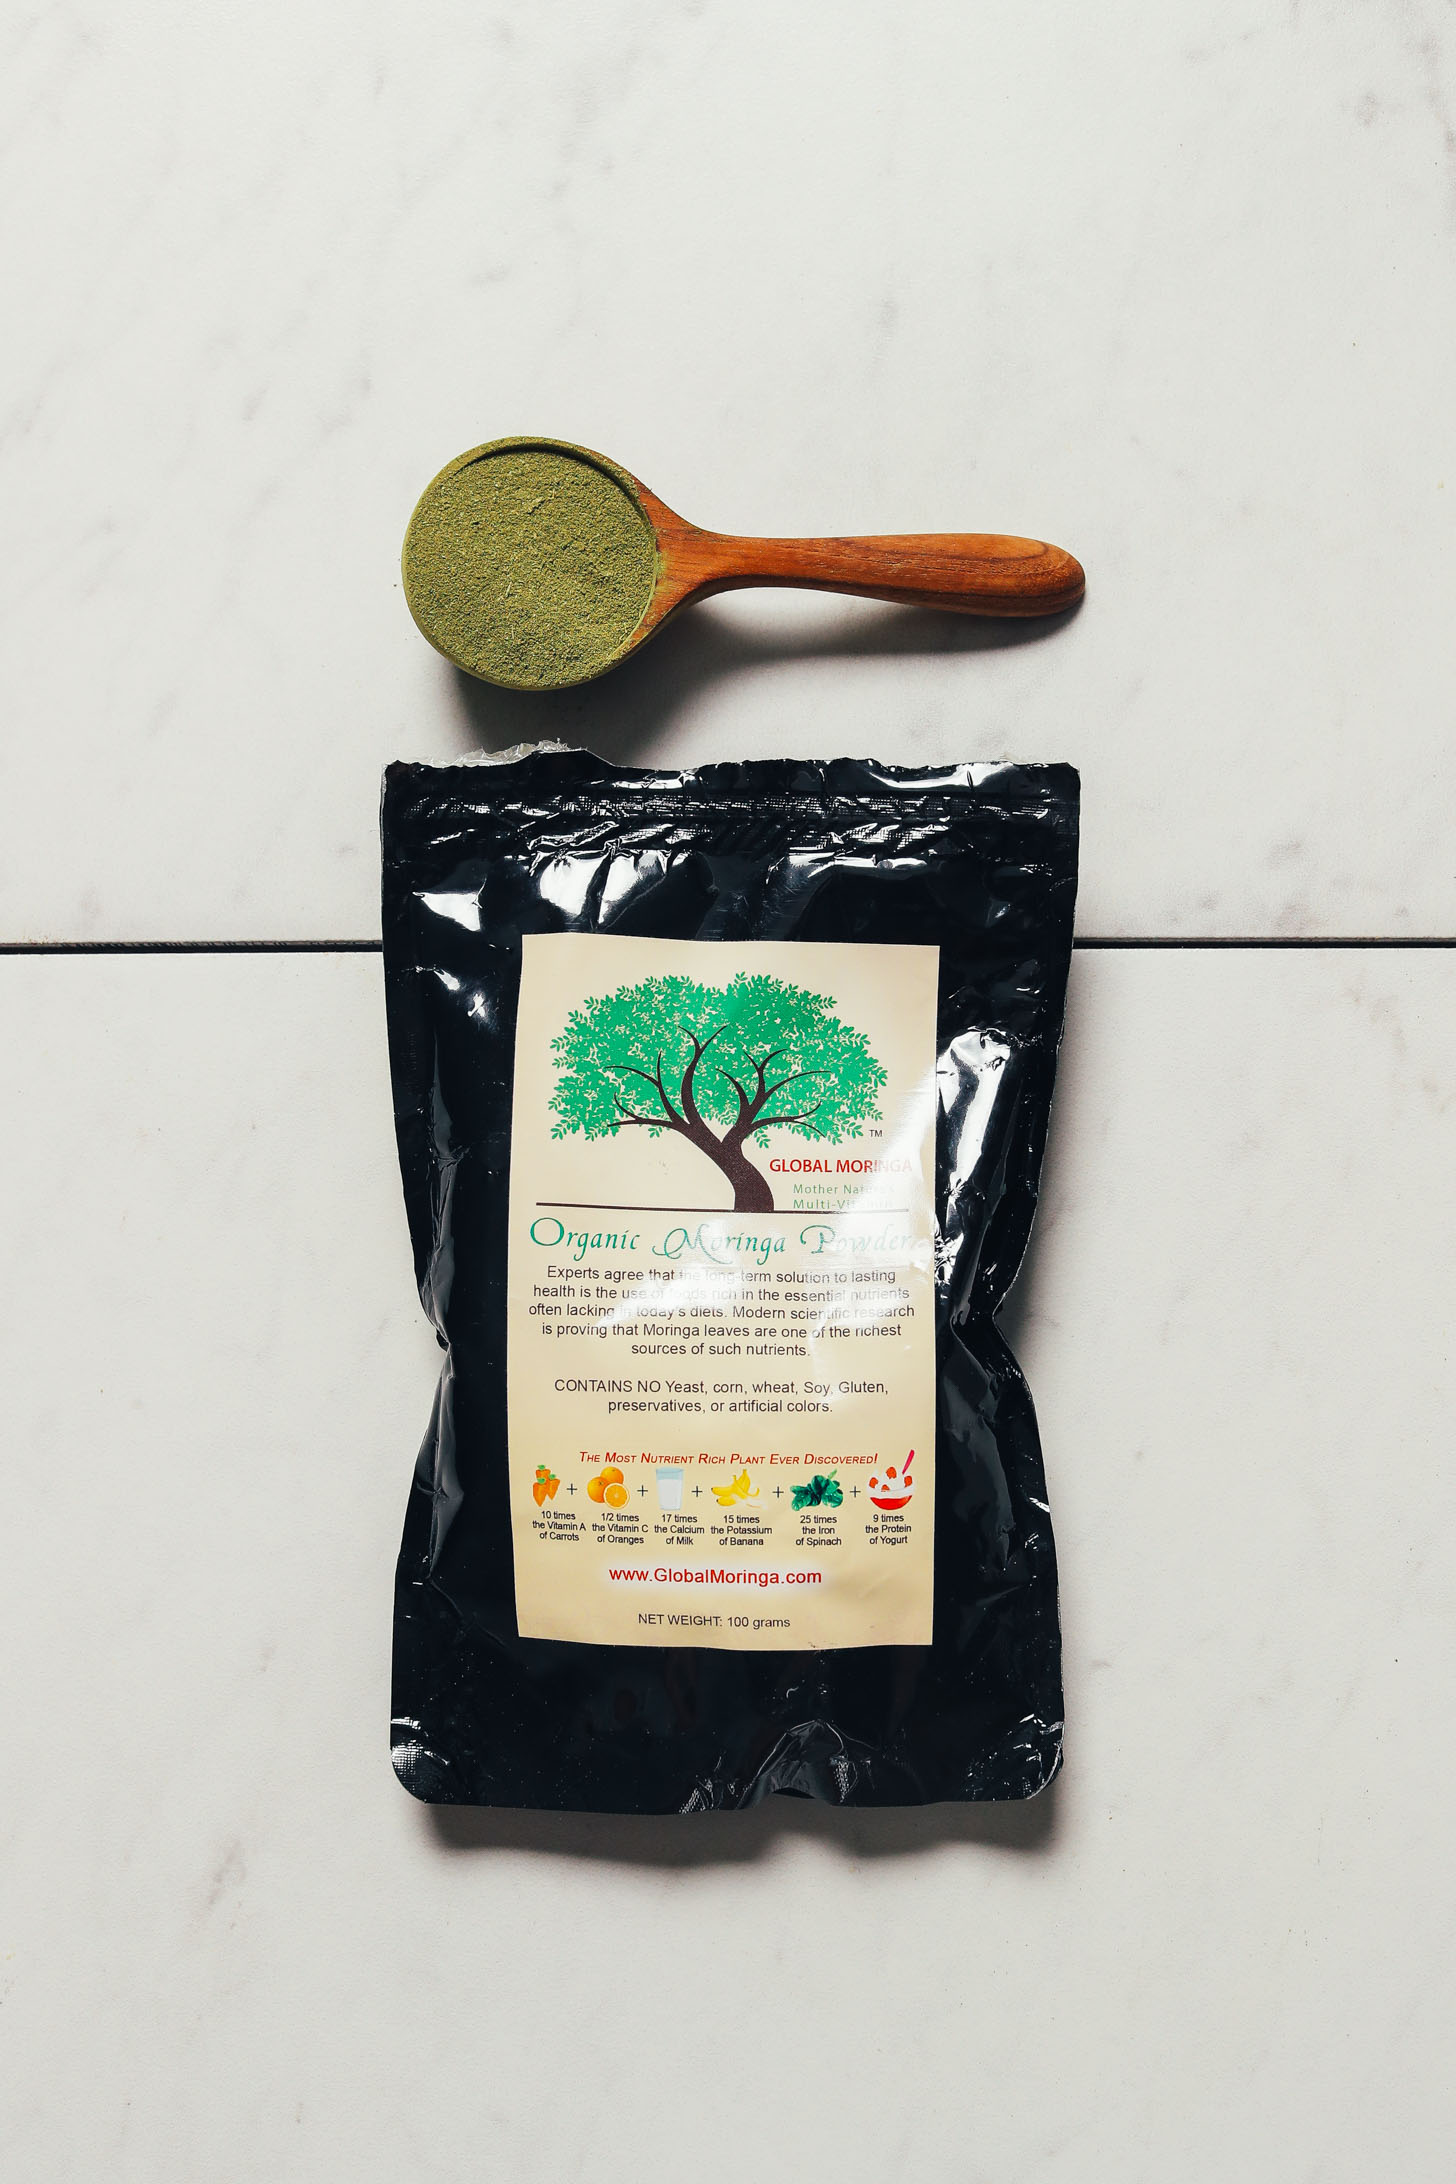 Bag and spoonful of Global Traditions Moringa powder for our review of moringa powder brands